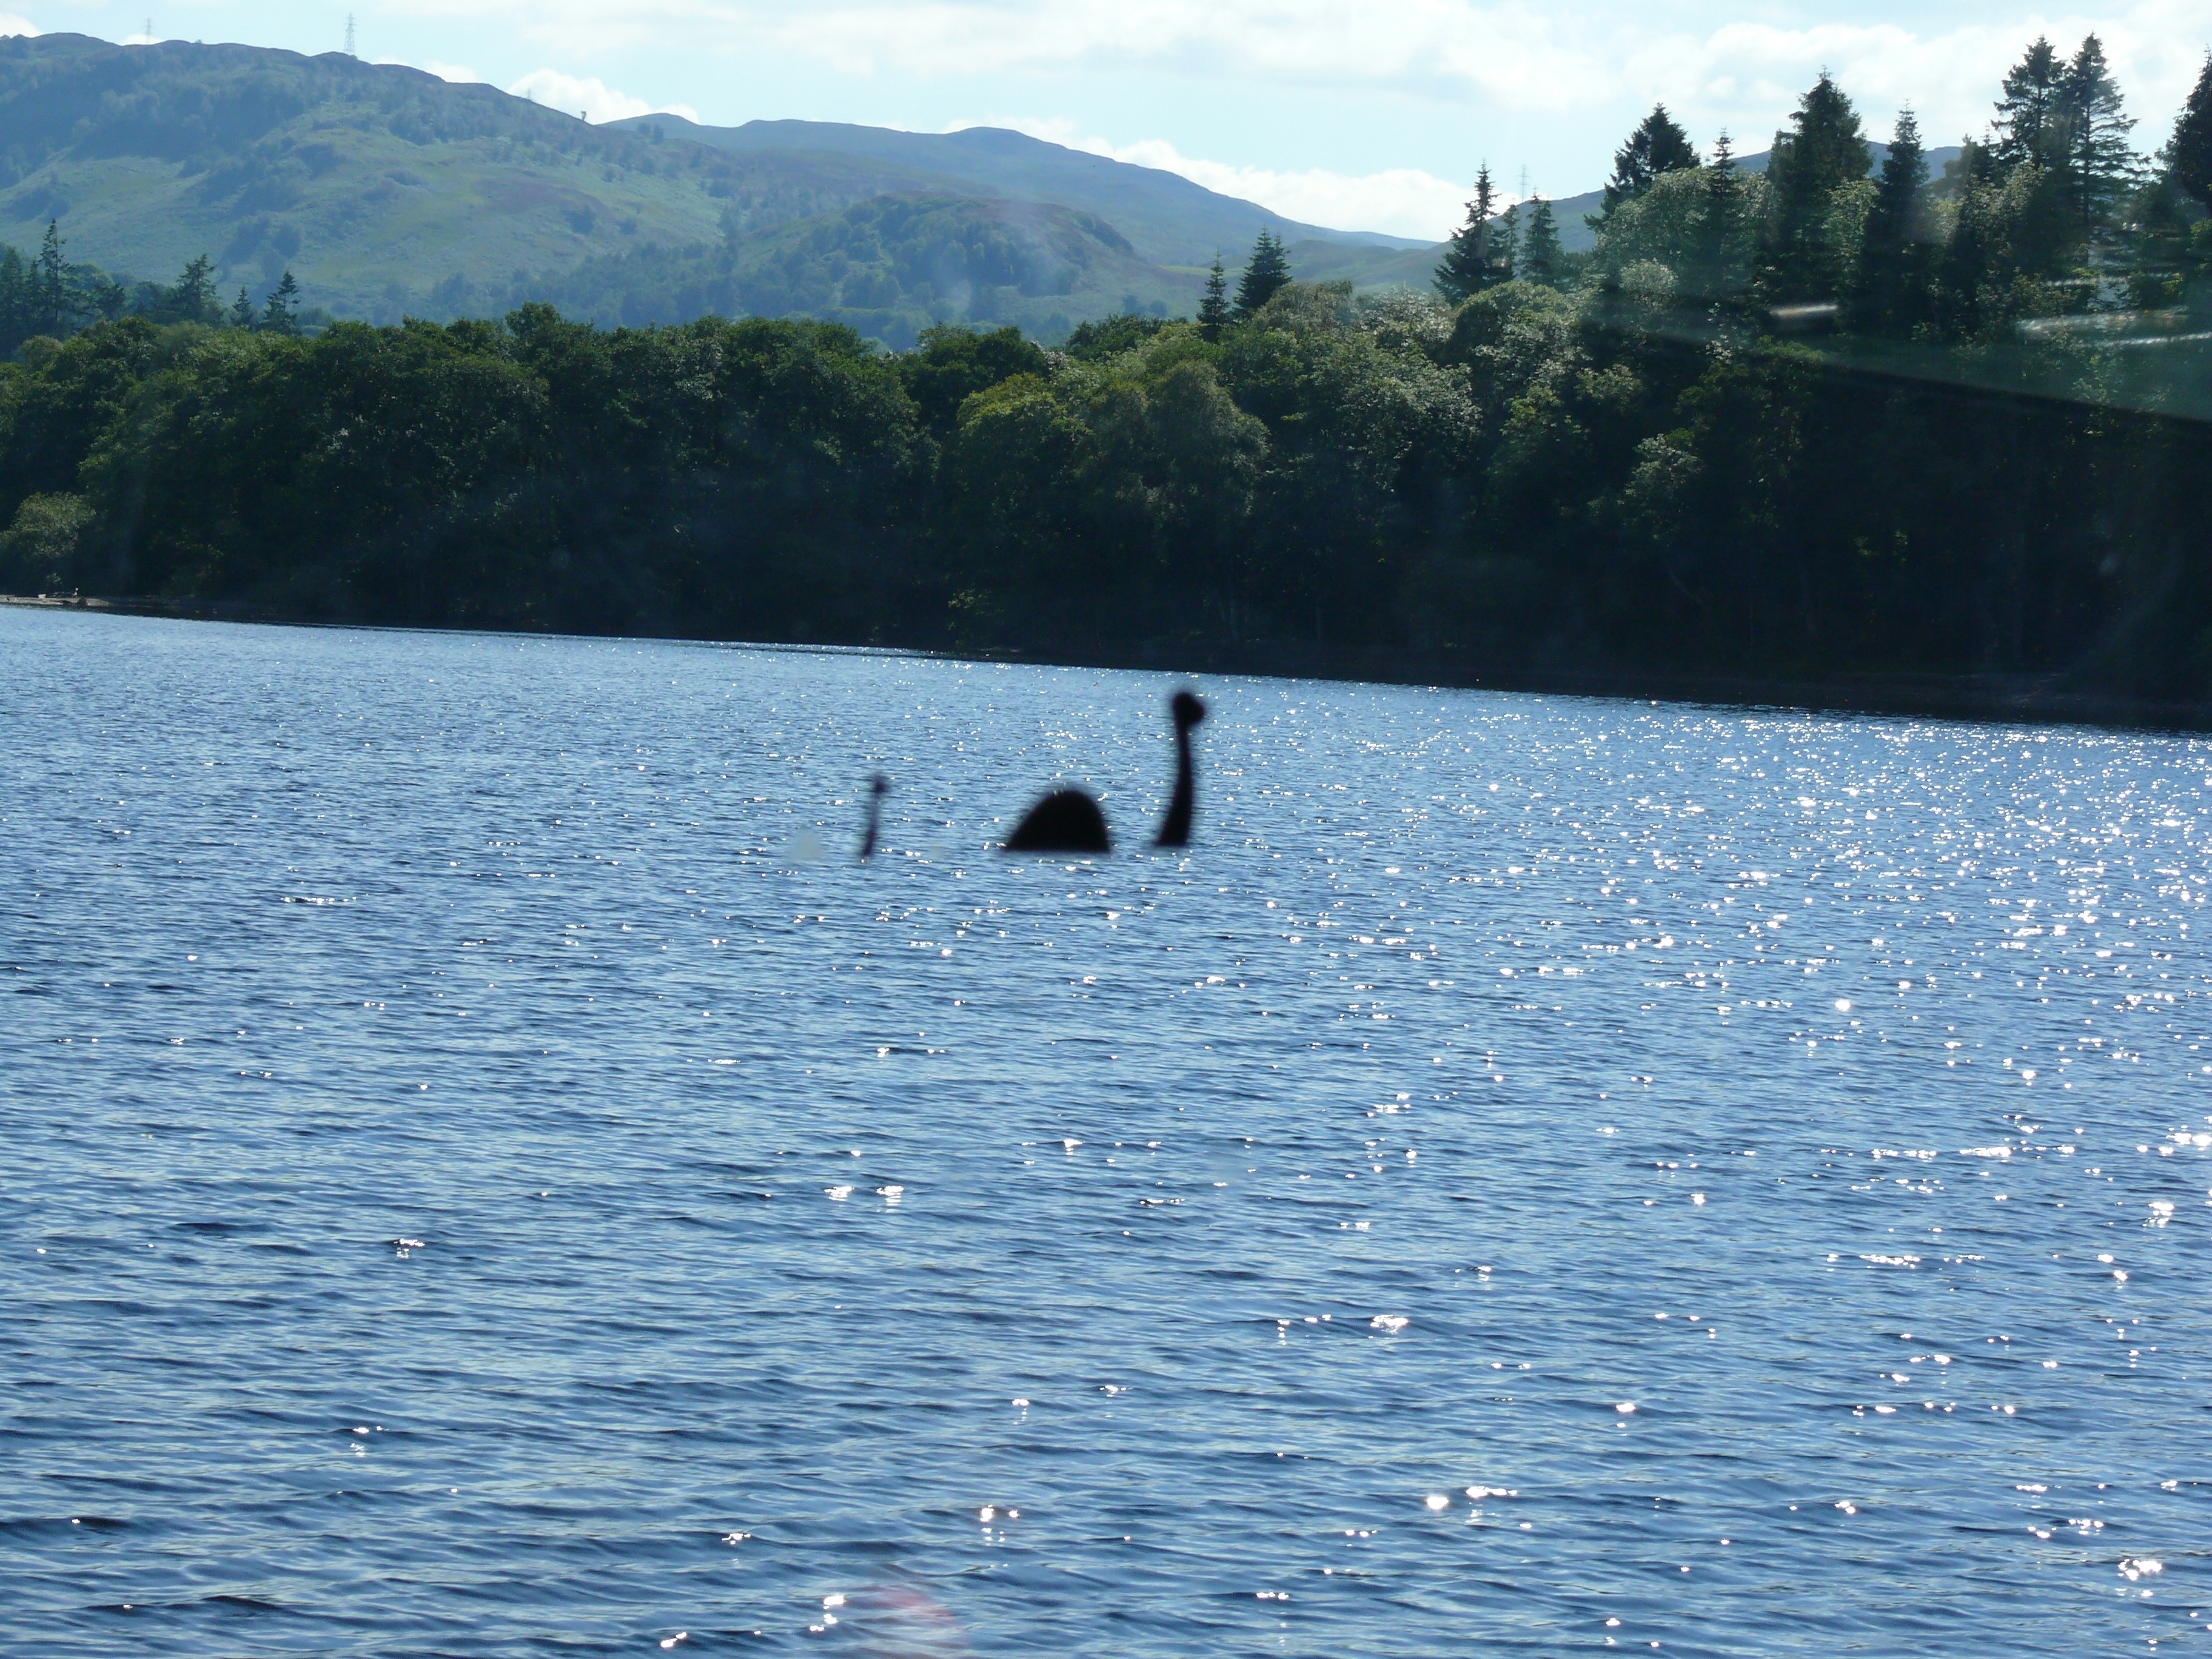 File:LOCH NESS MONSTER.jpg - Wikimedia Commons